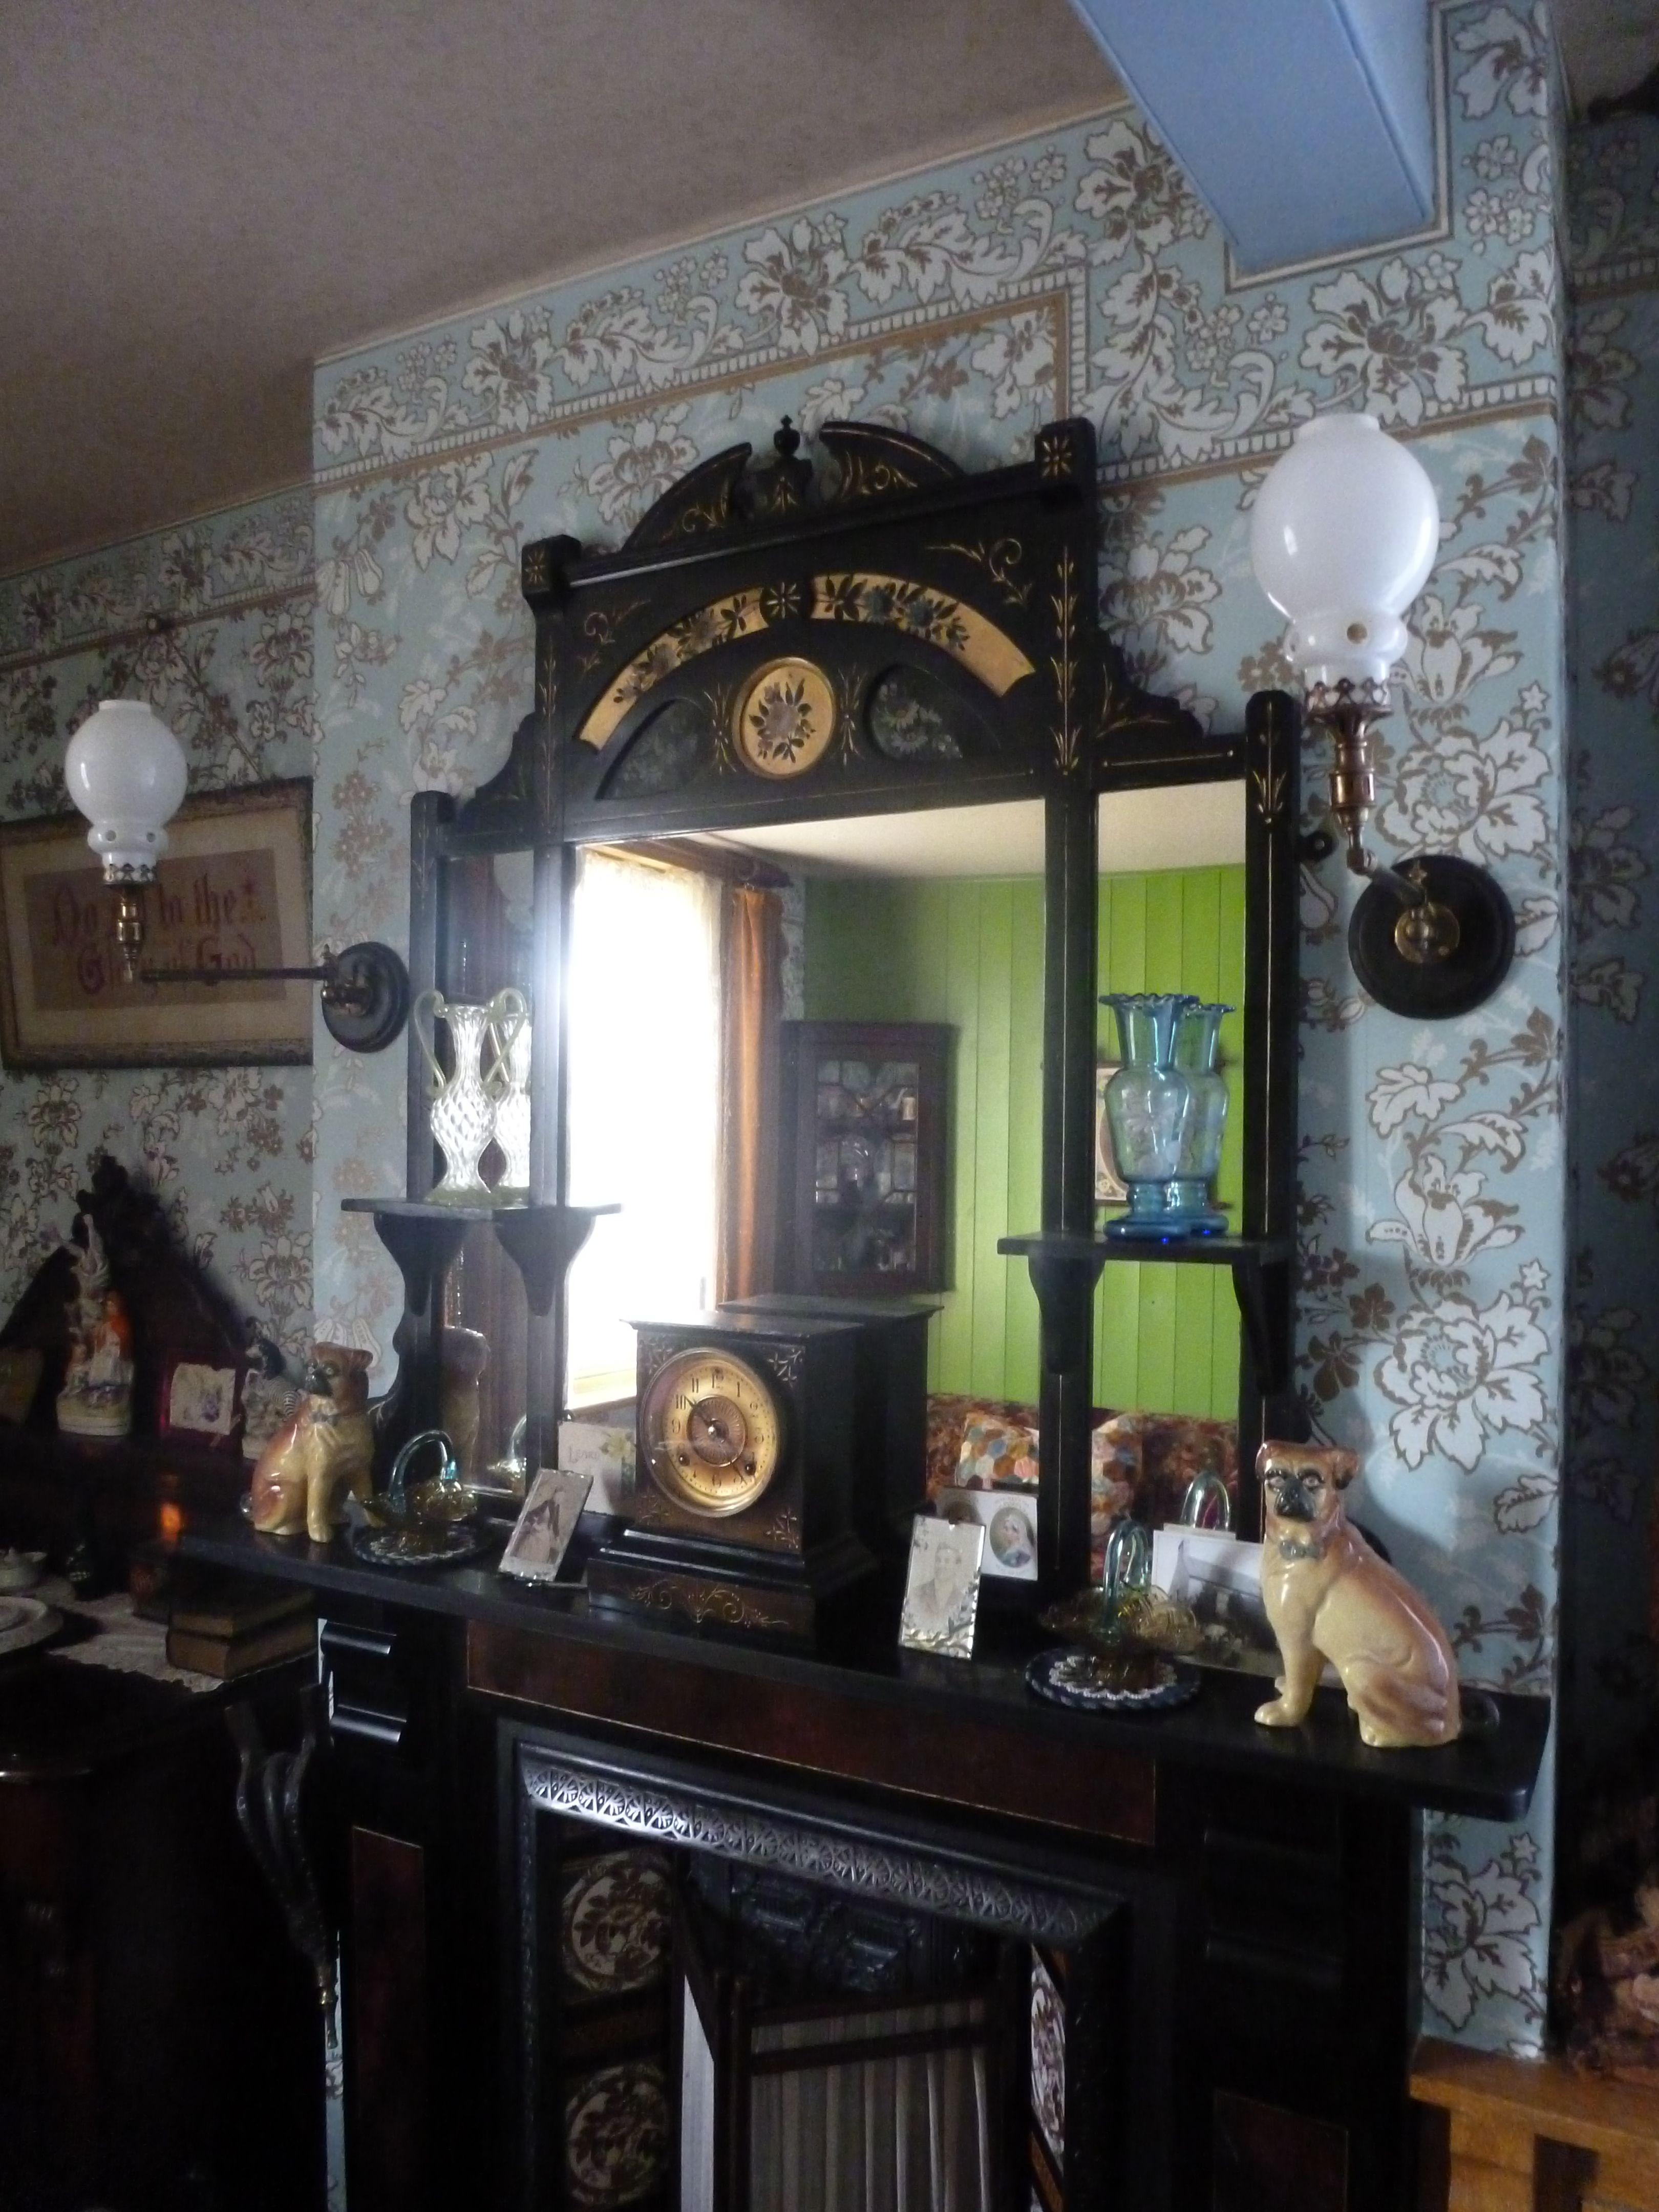 Edwardian Drawing Room: 1890s Victorian Parlour Drawing Room Interior In An Upper